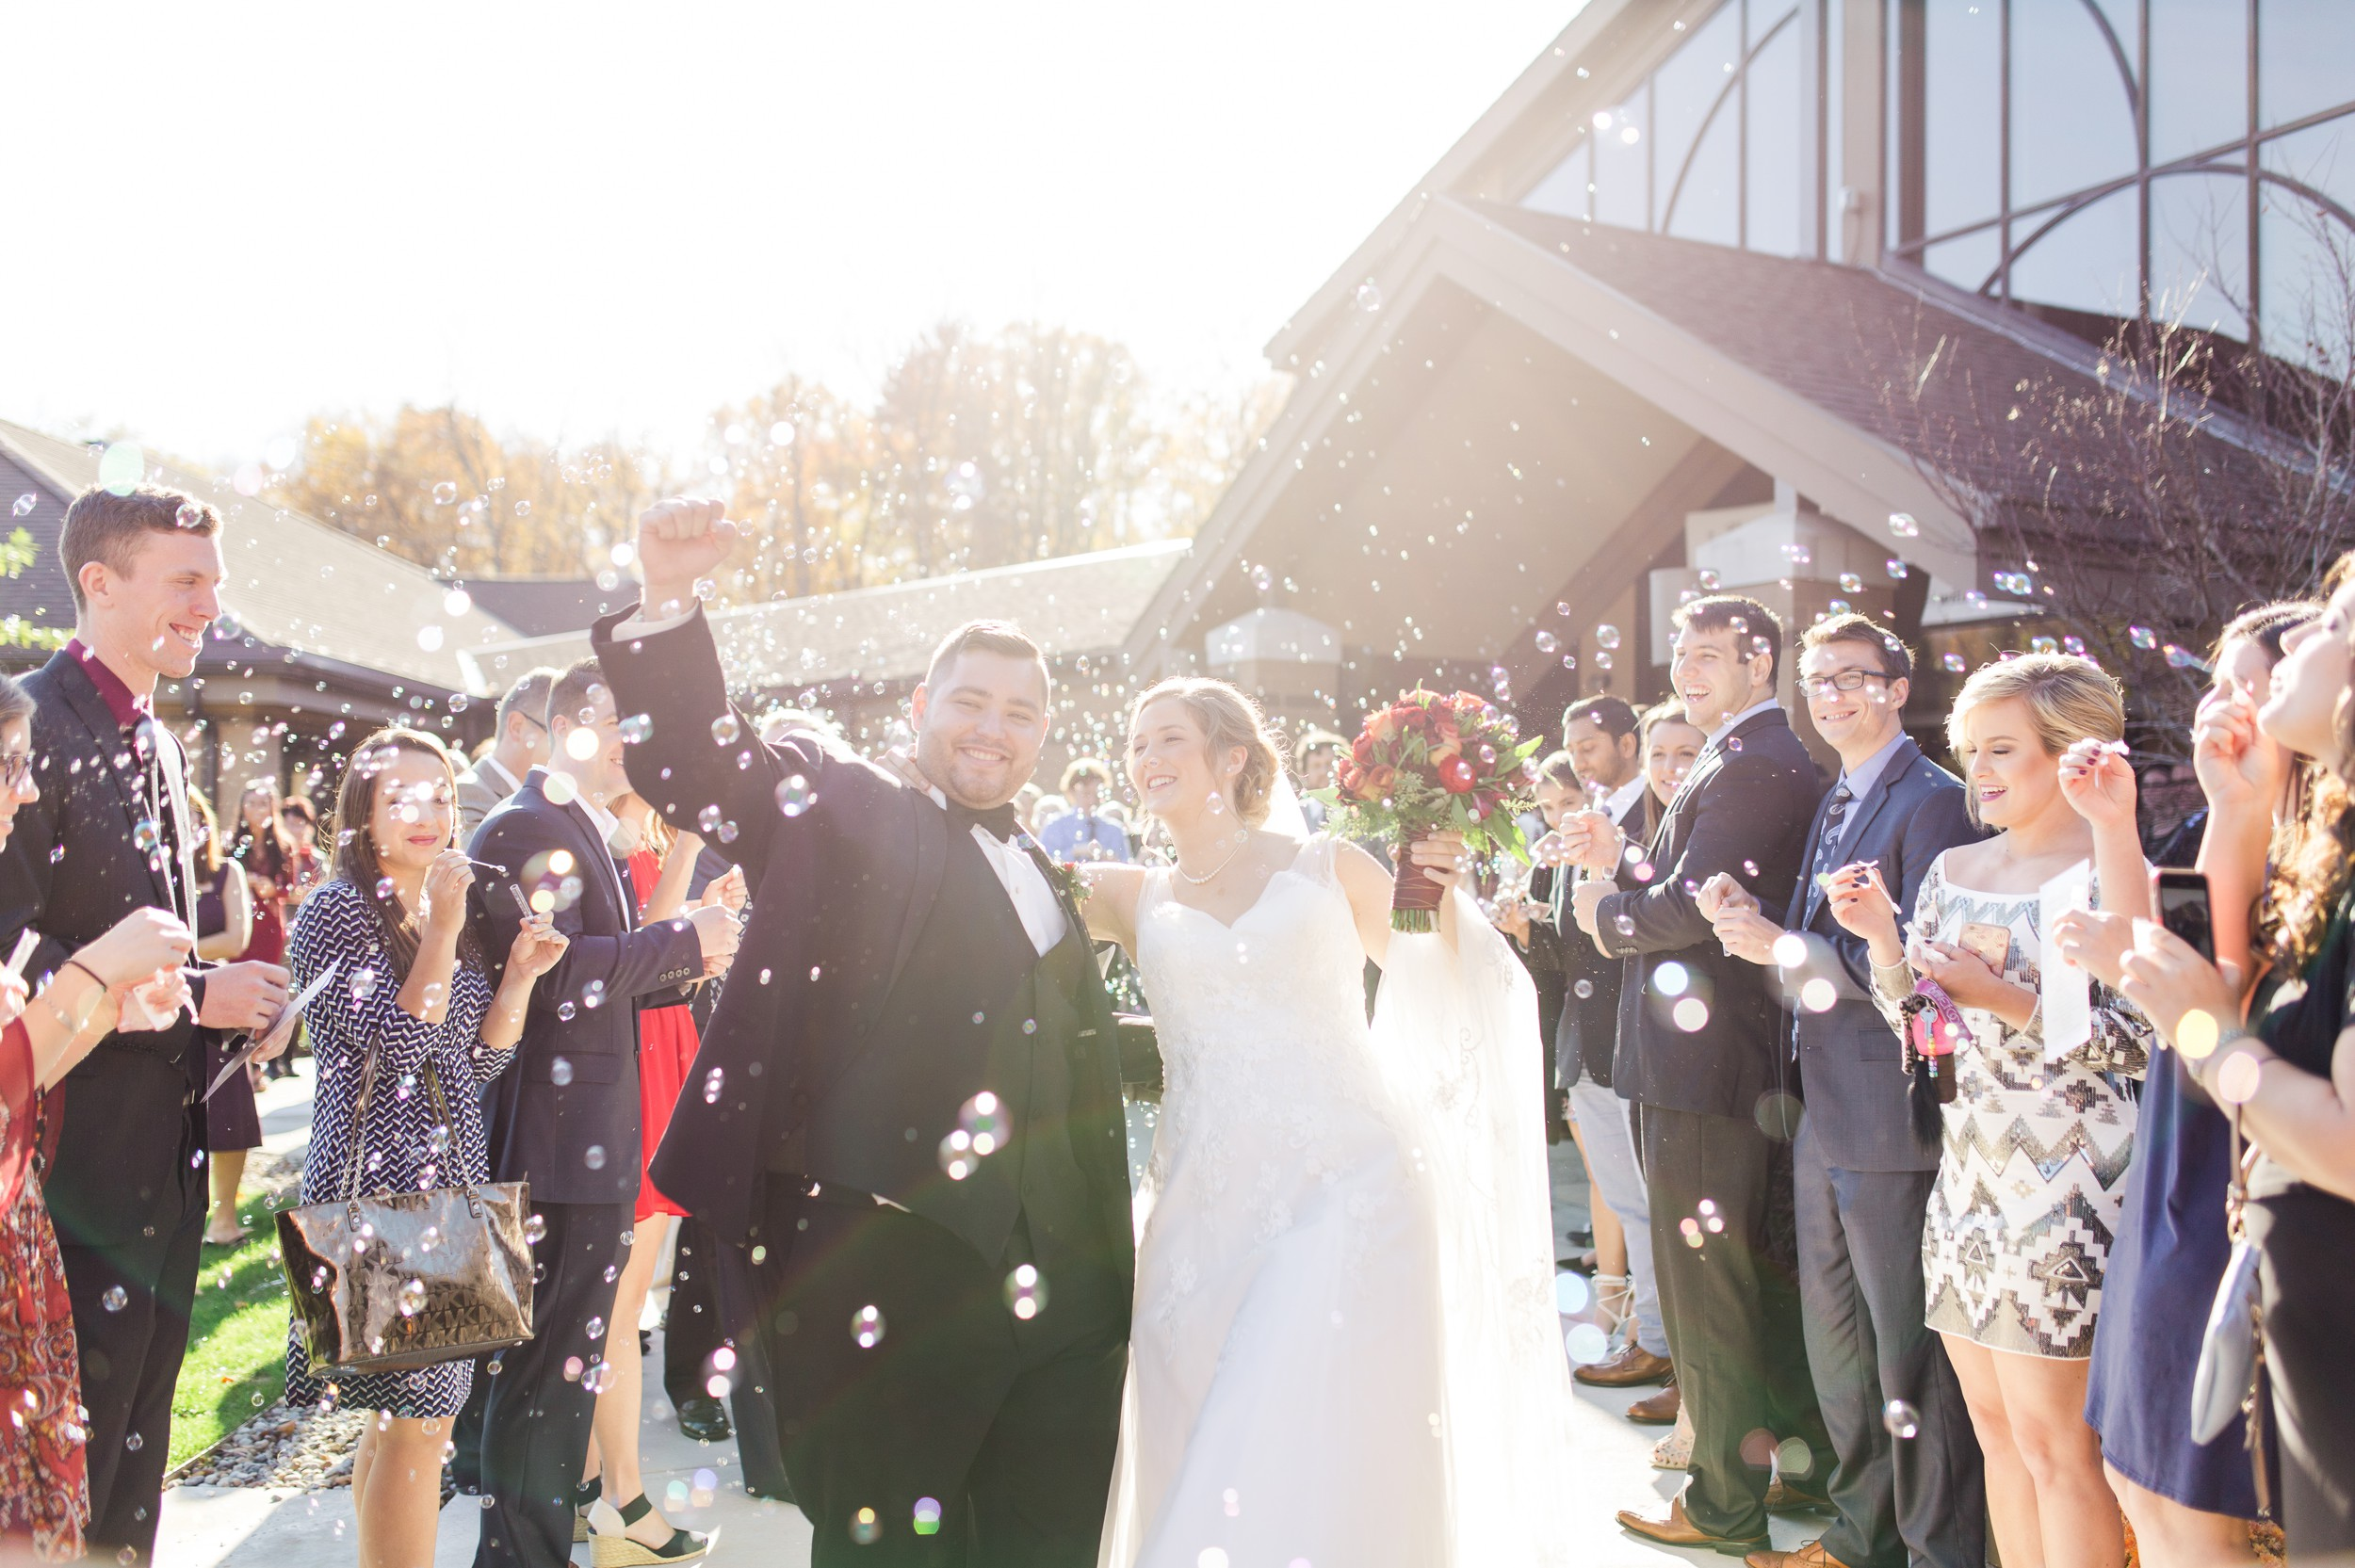 Baltimore Wedding Photographer, Brandon C Photo, capturing a beautiful bubble exit from a Fall wedding in Maryland.